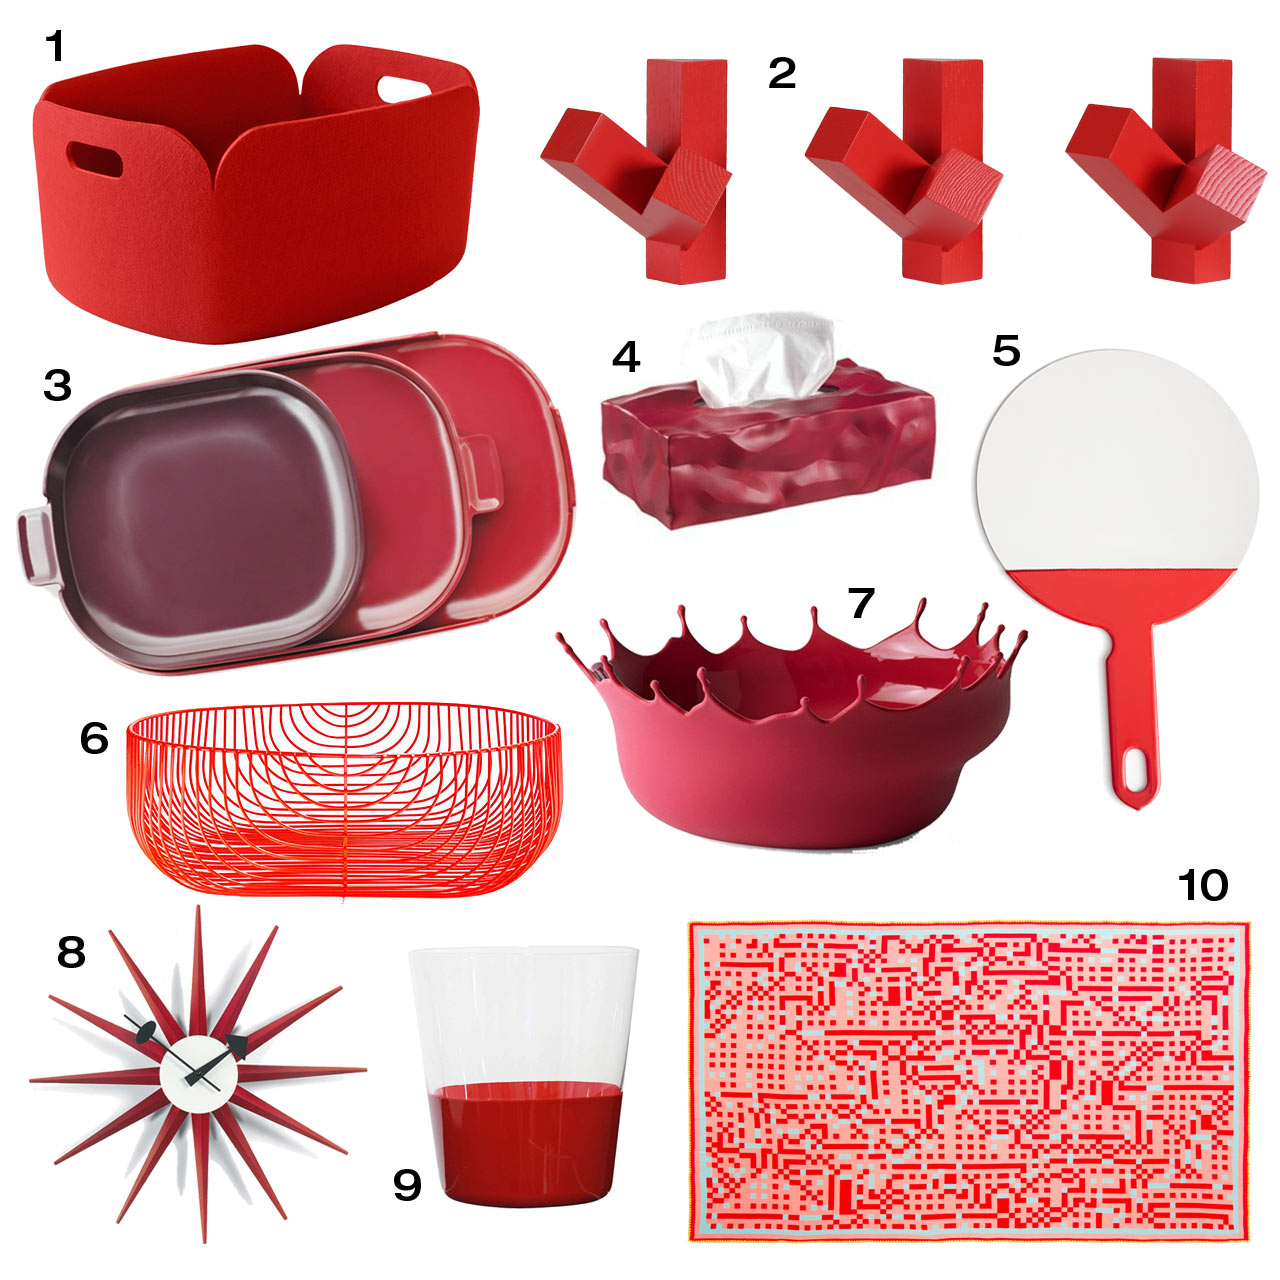 10 Red Objects You Ll Fall In Love With